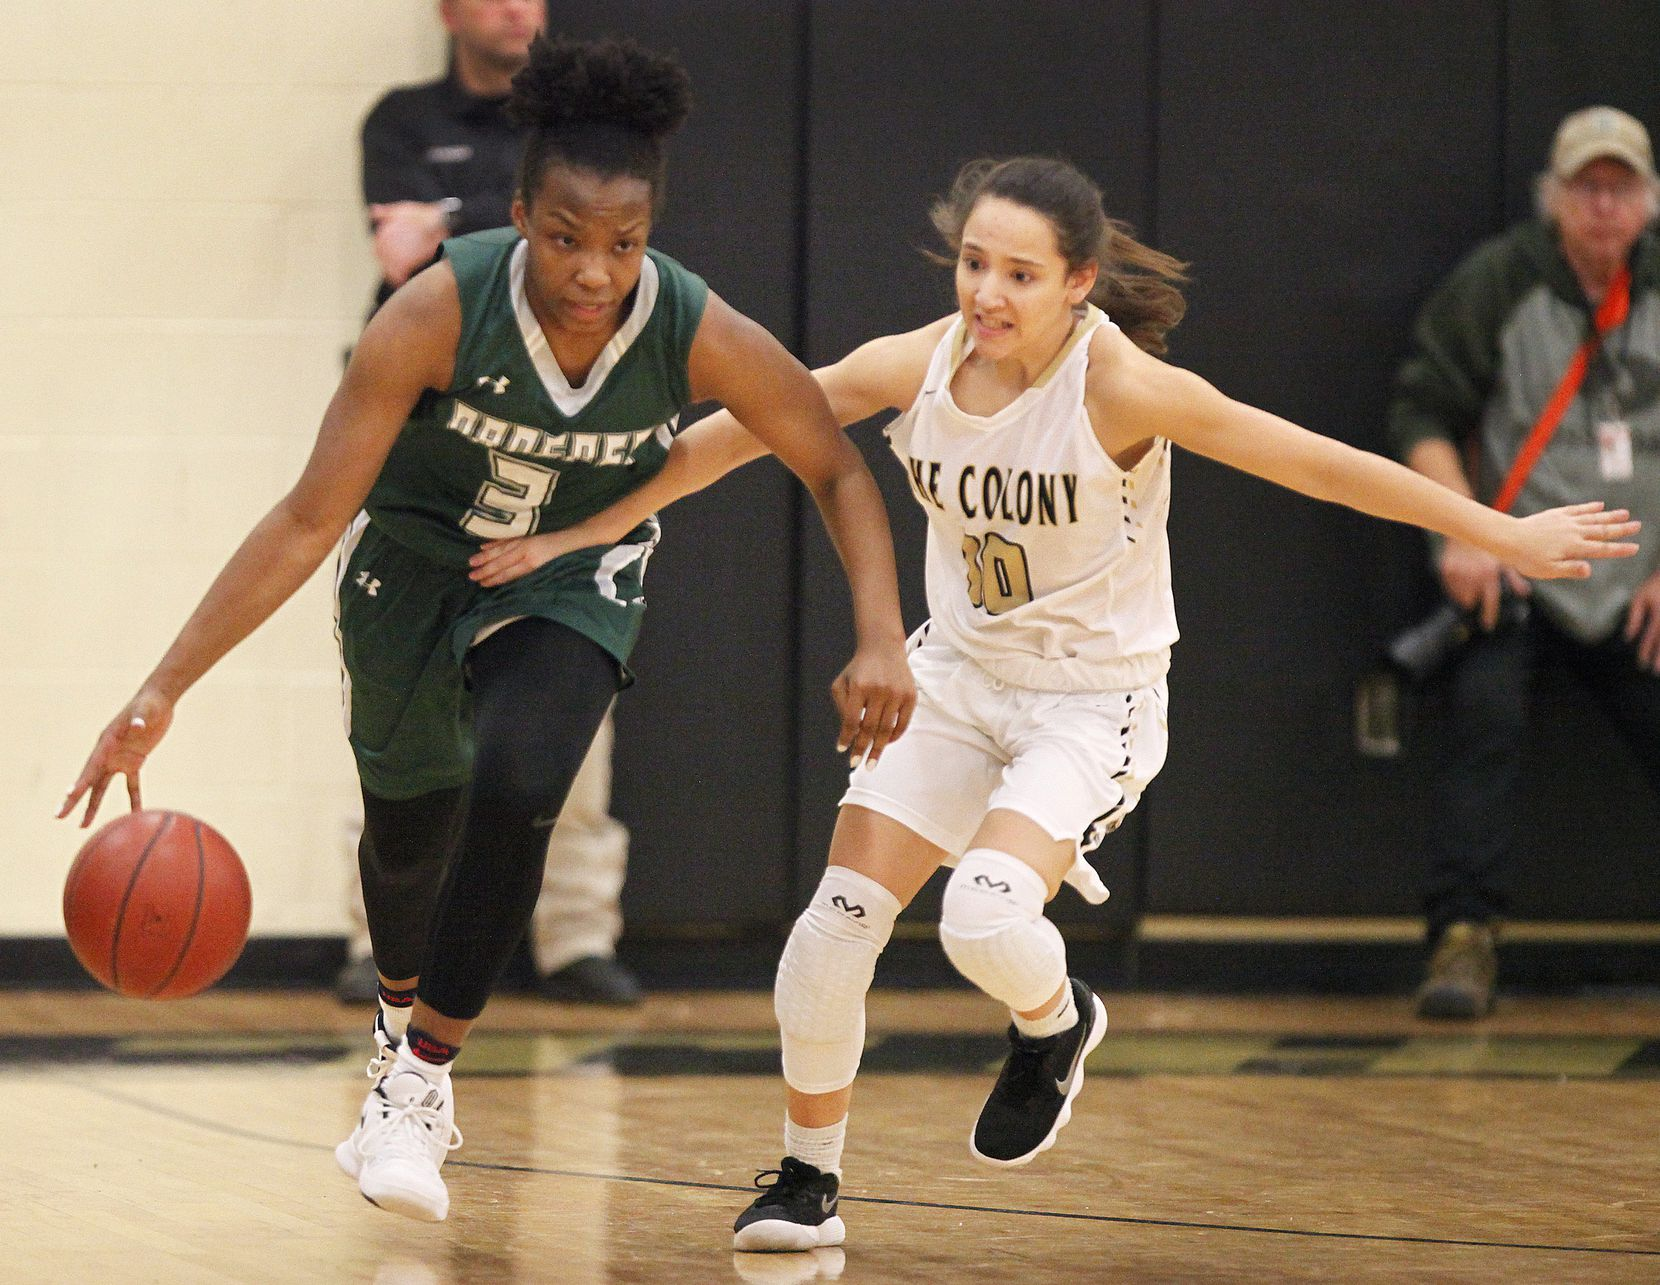 Proper post Jordyn Oliver dribbles down the court while defended by The Colony gaurd Hannah Rhone (10) during the first half as The Colony High School hosted Prosper High School in a girls basketball game played on Tuesday night, January 30, 2018. (Stewart F. House/Special Contributor)